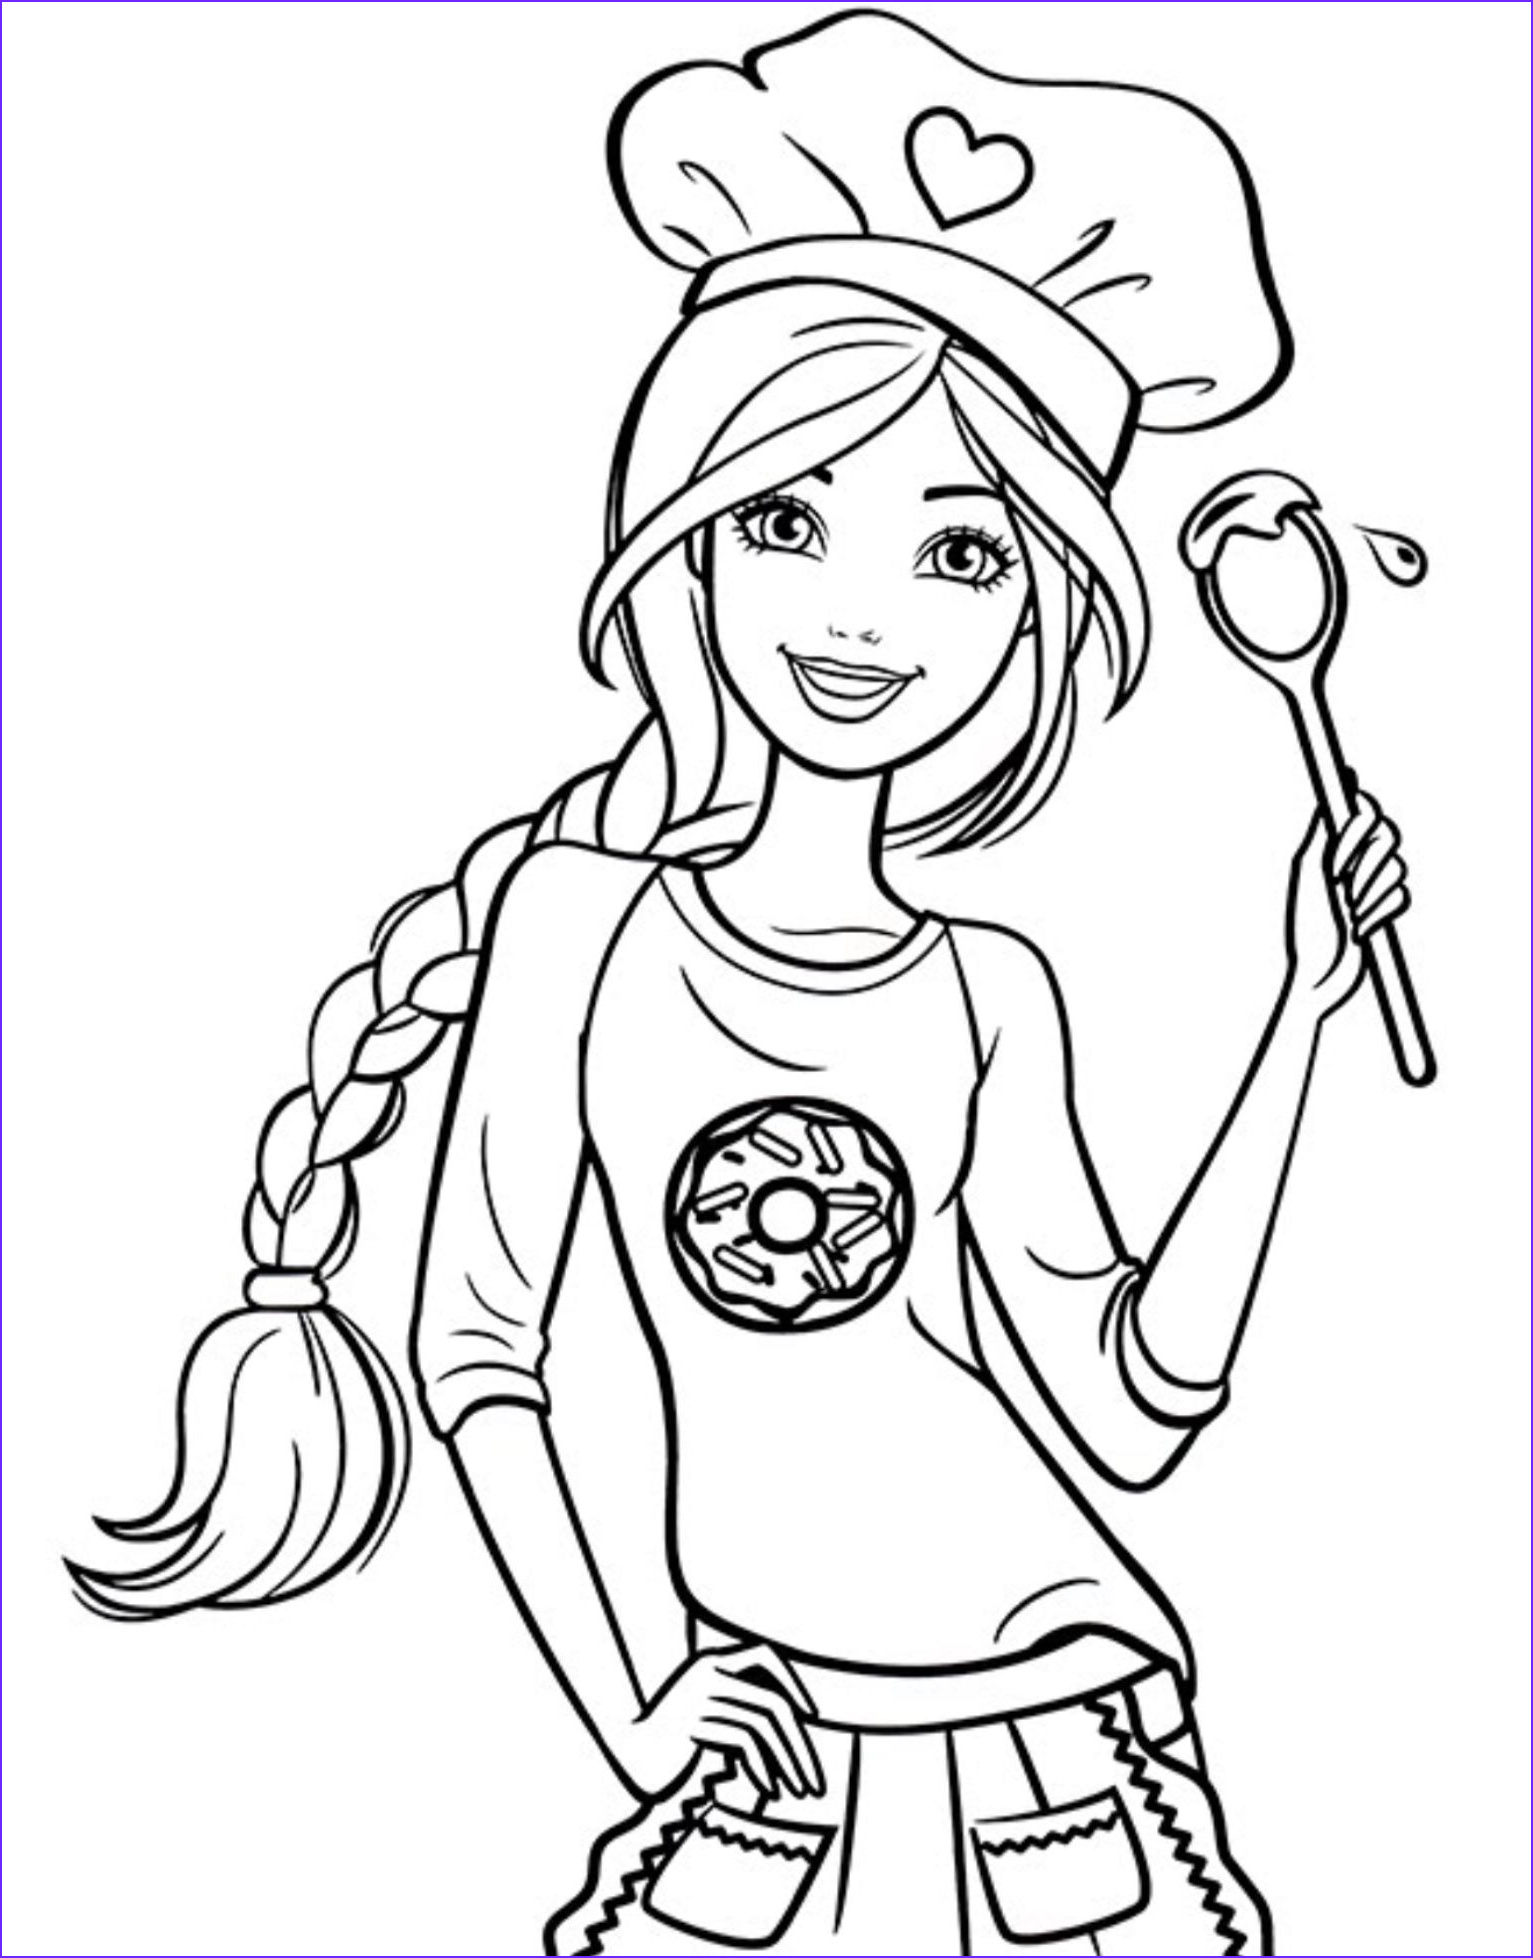 Barbie Superhero Coloring Page New Photography Barbie Superhero Coloring Pages